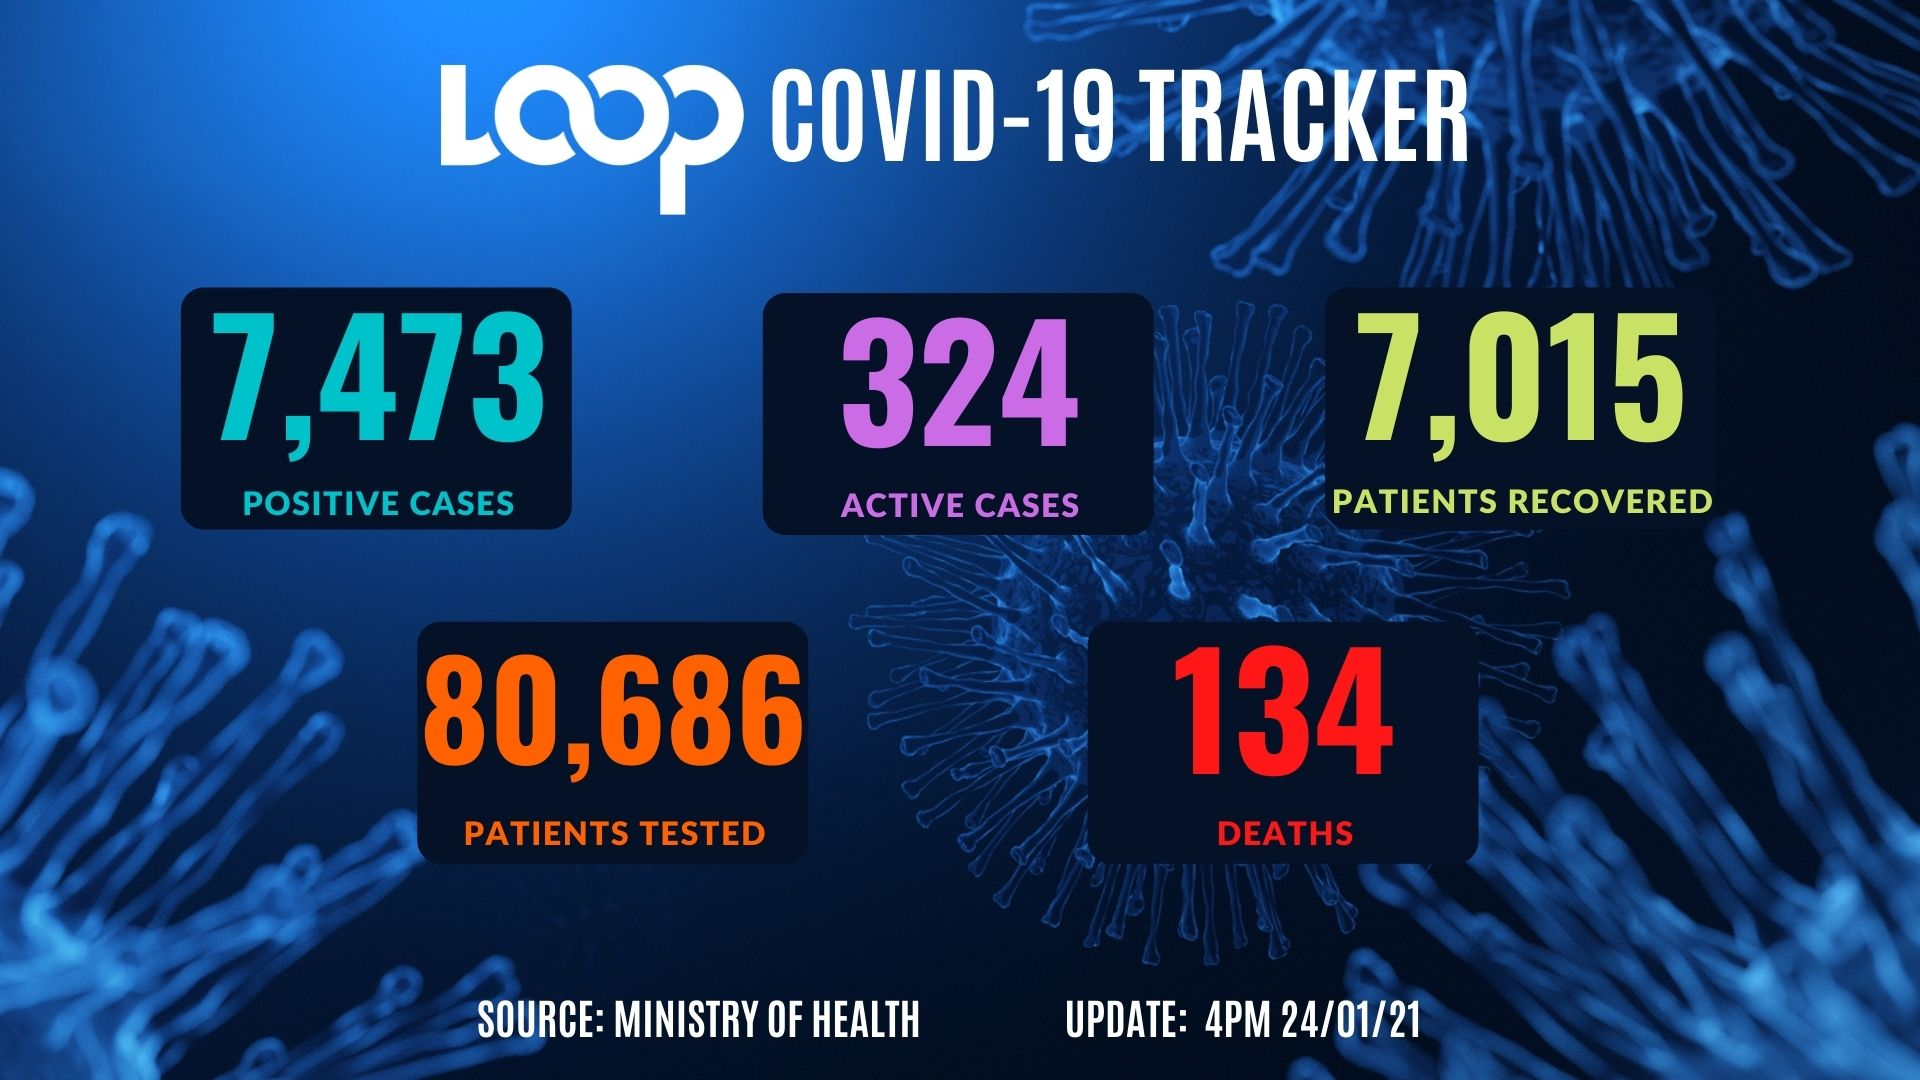 New Zealand reports first Covid case in community in two months